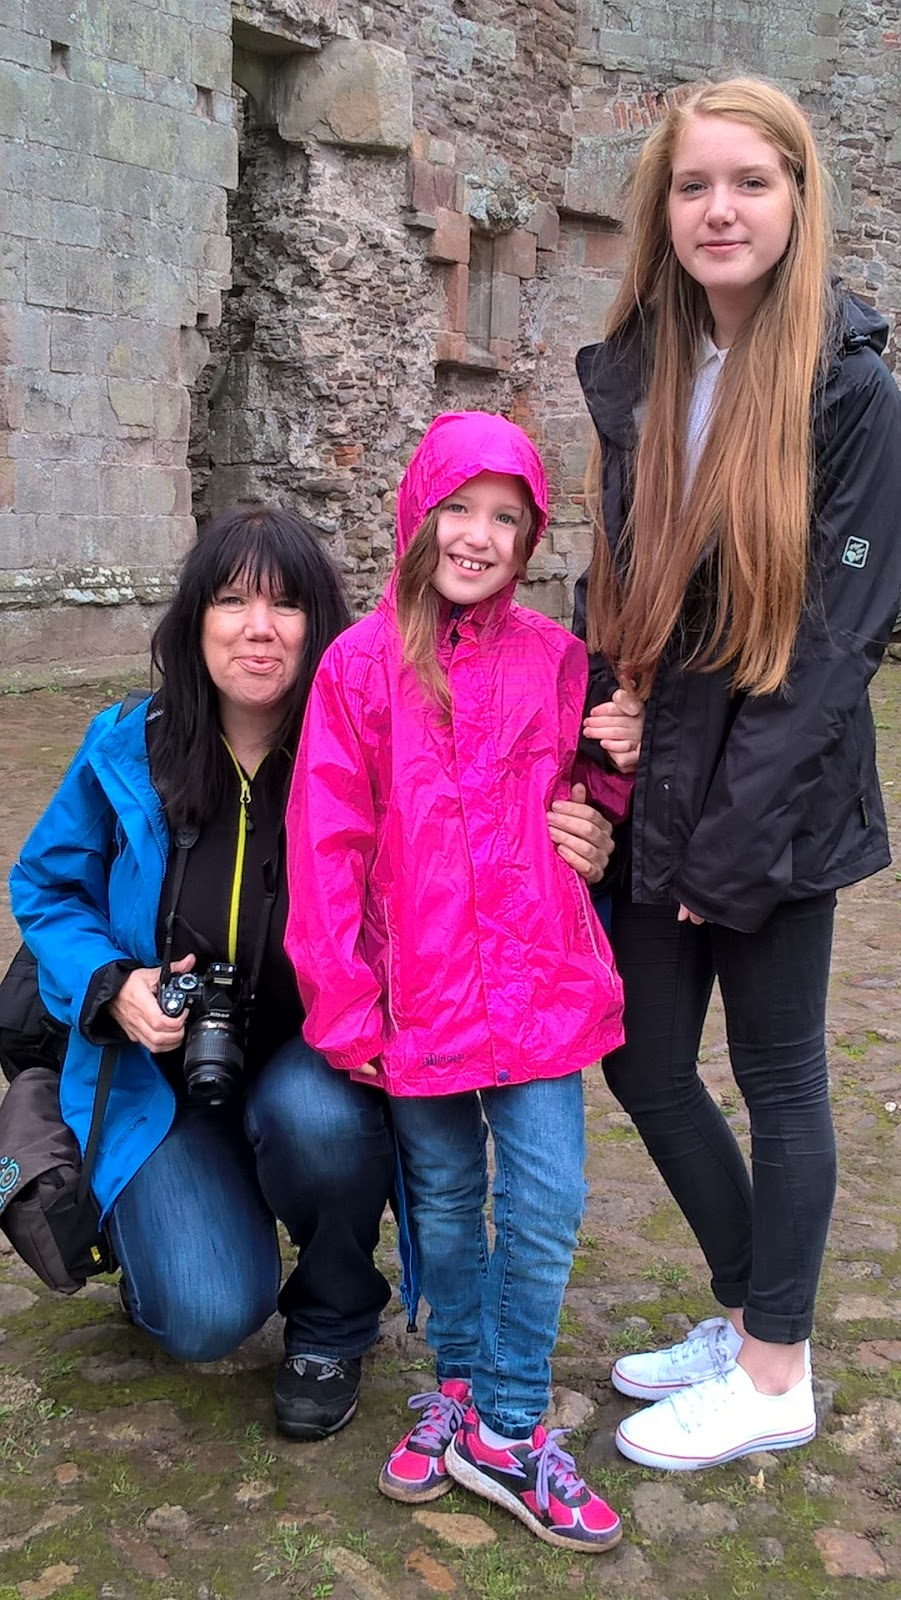 Sarah Brooks-Nayar, Georgia Jasper and Caitlin Hobbis at Raglan Castle